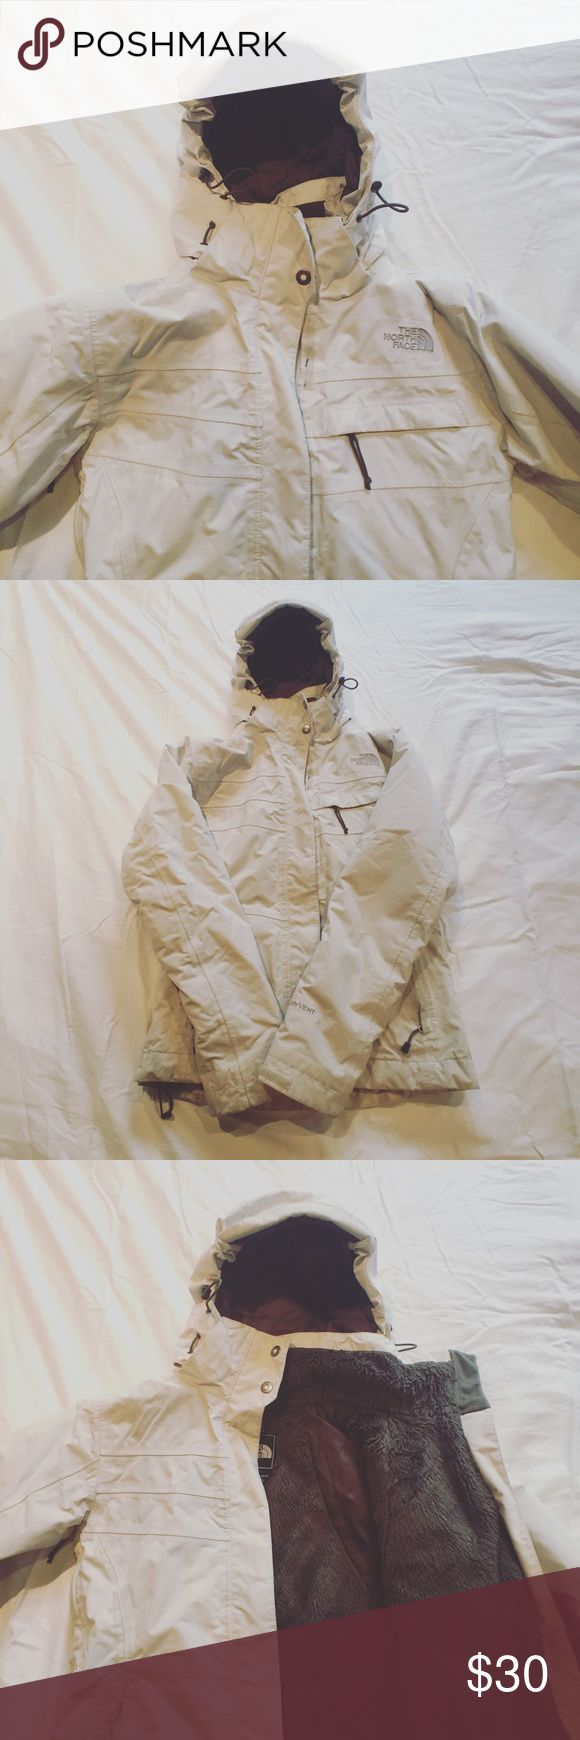 The North Face Winter Jacket Off white with brown accents and detachable hood. Worn, but no damage. Hits at the waist. The North Face Jackets & Coats